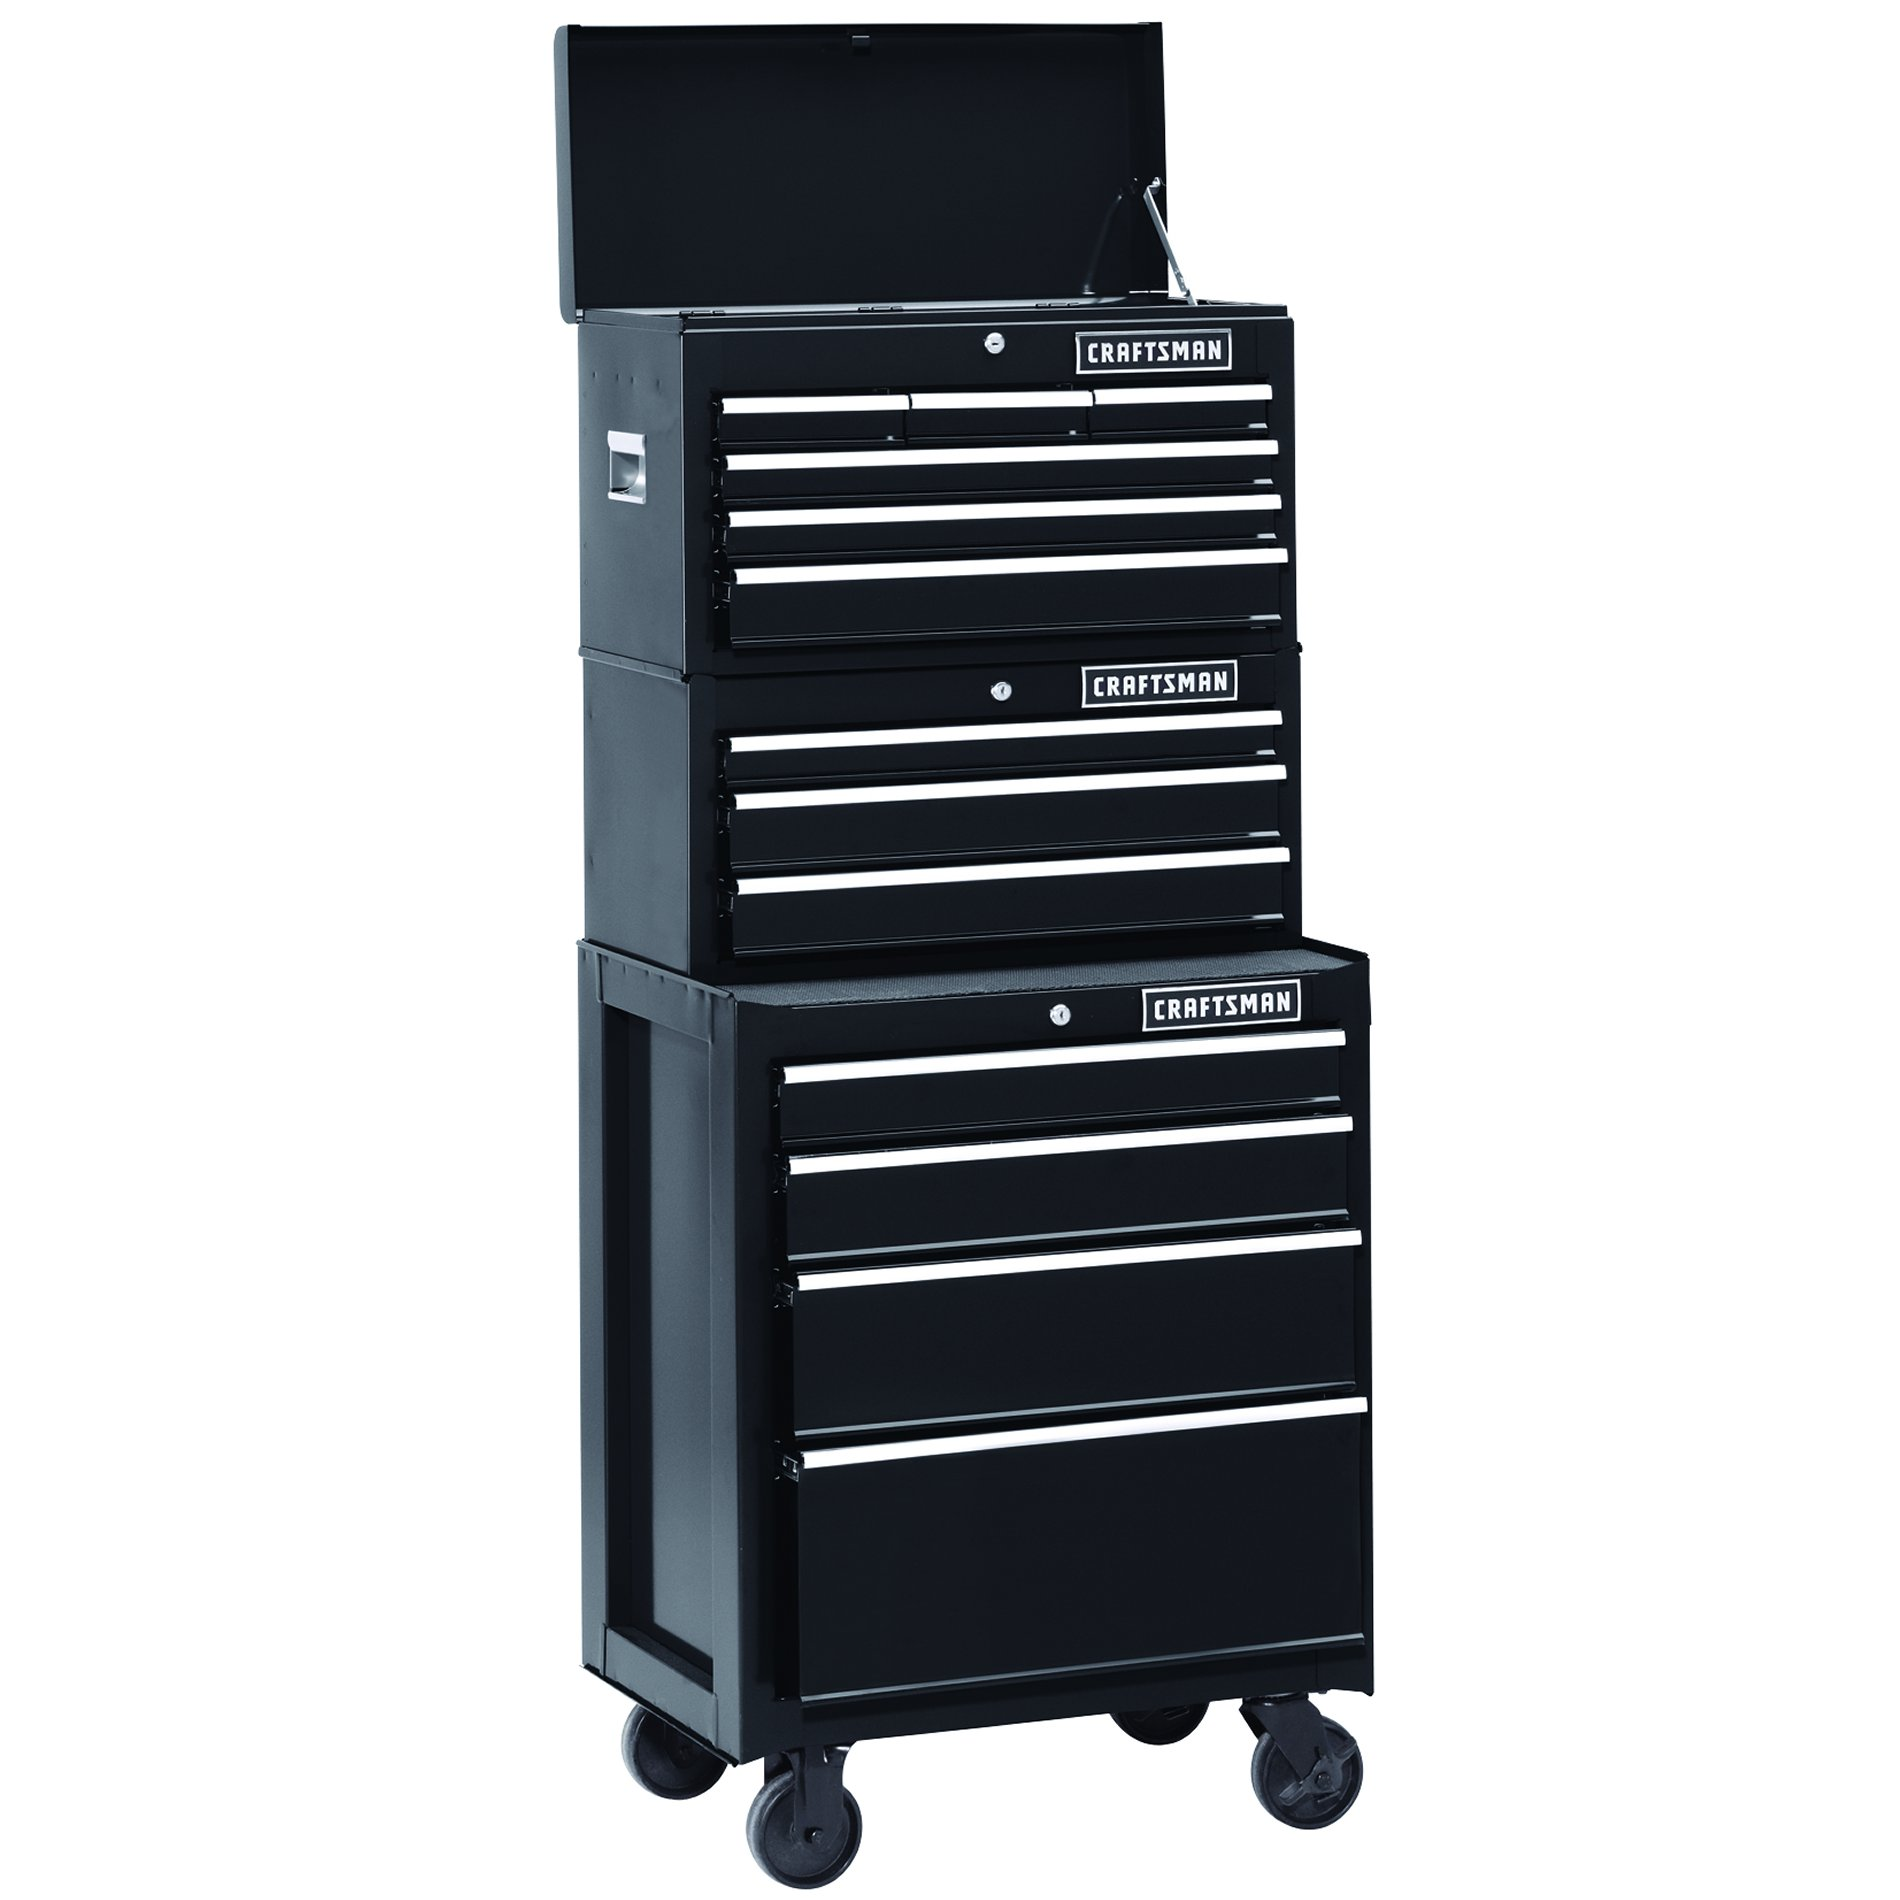 Craftsman 26 in. 3-Drawer Heavy-Duty Ball Bearing Middle Chest - Black